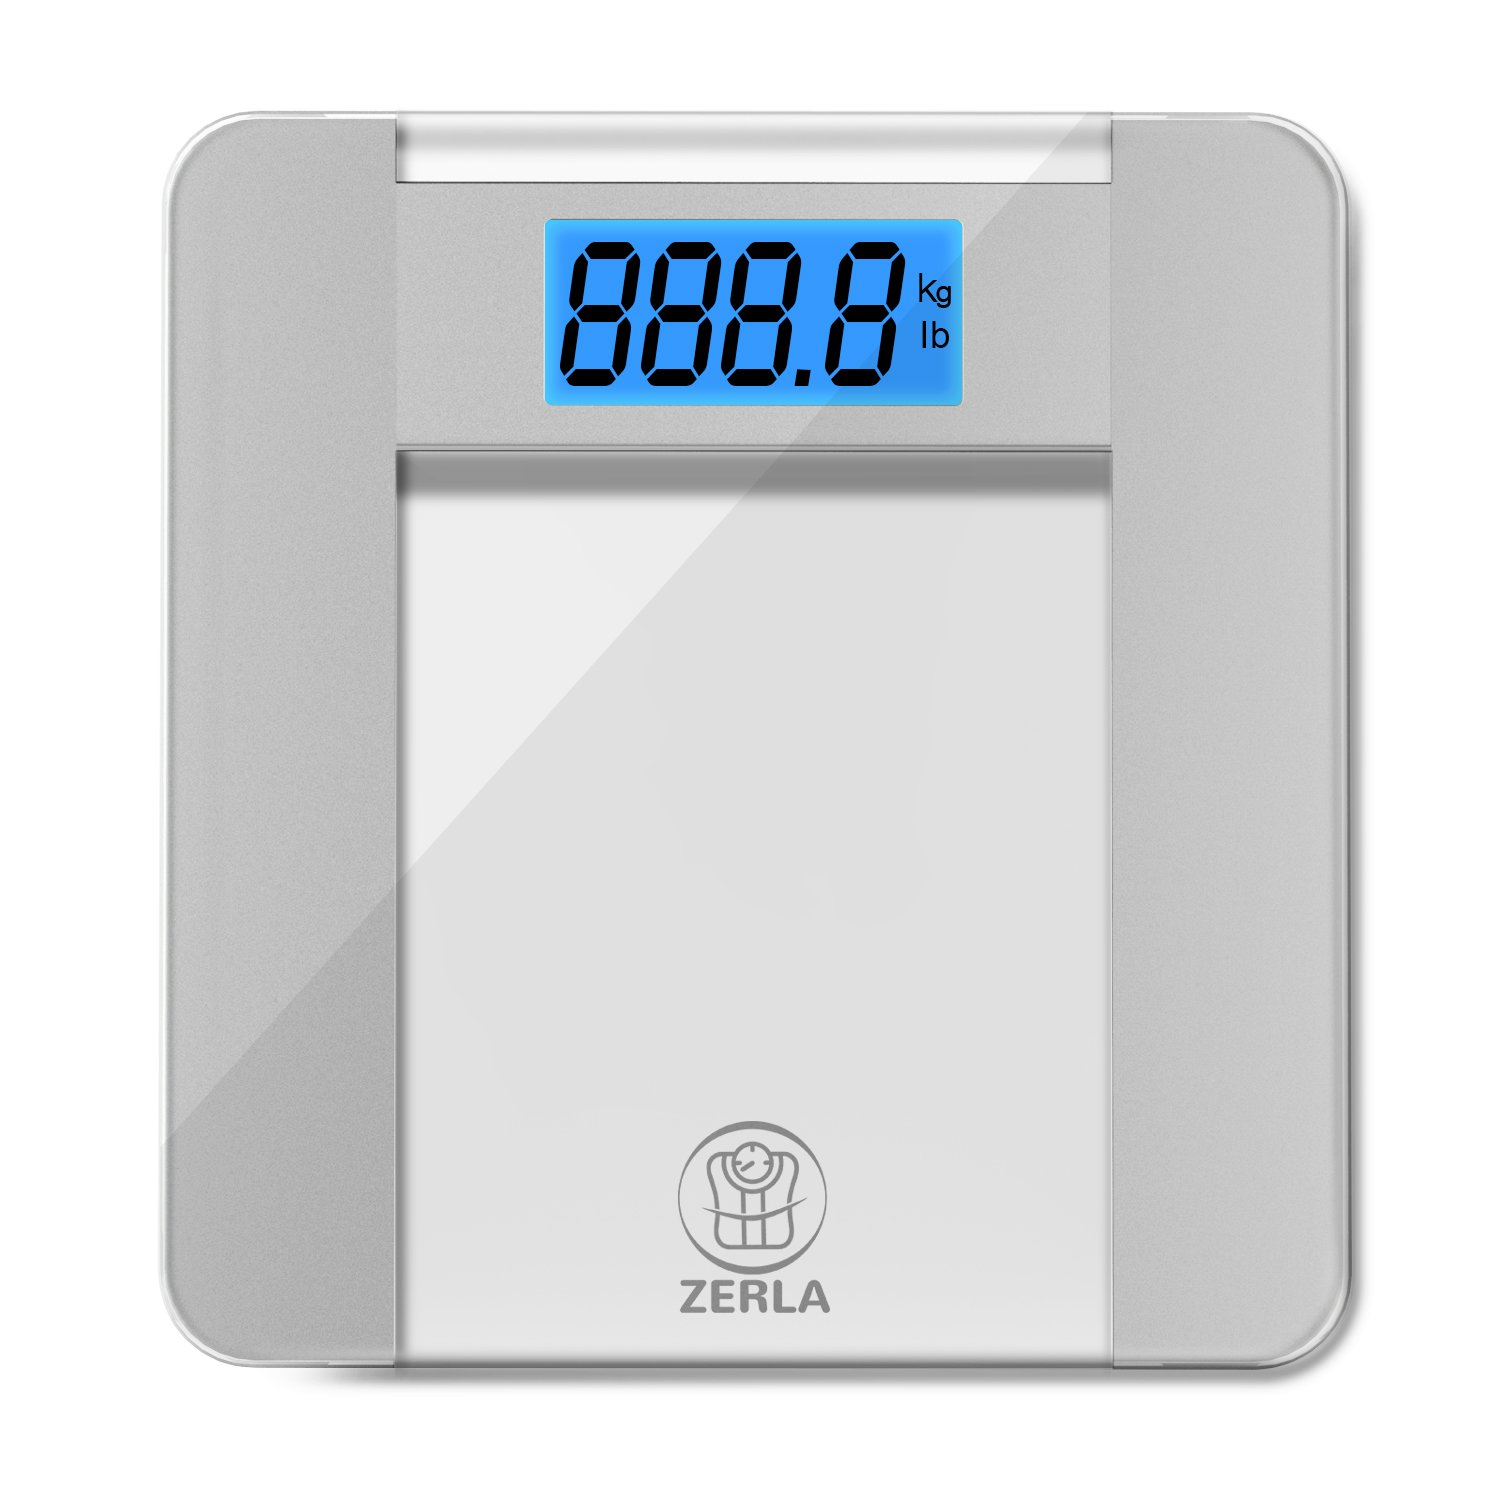 Amazoncom ZERLA Digital Bathroom Scale Highly Accurate Digital - Large display digital bathroom scales for bathroom decor ideas